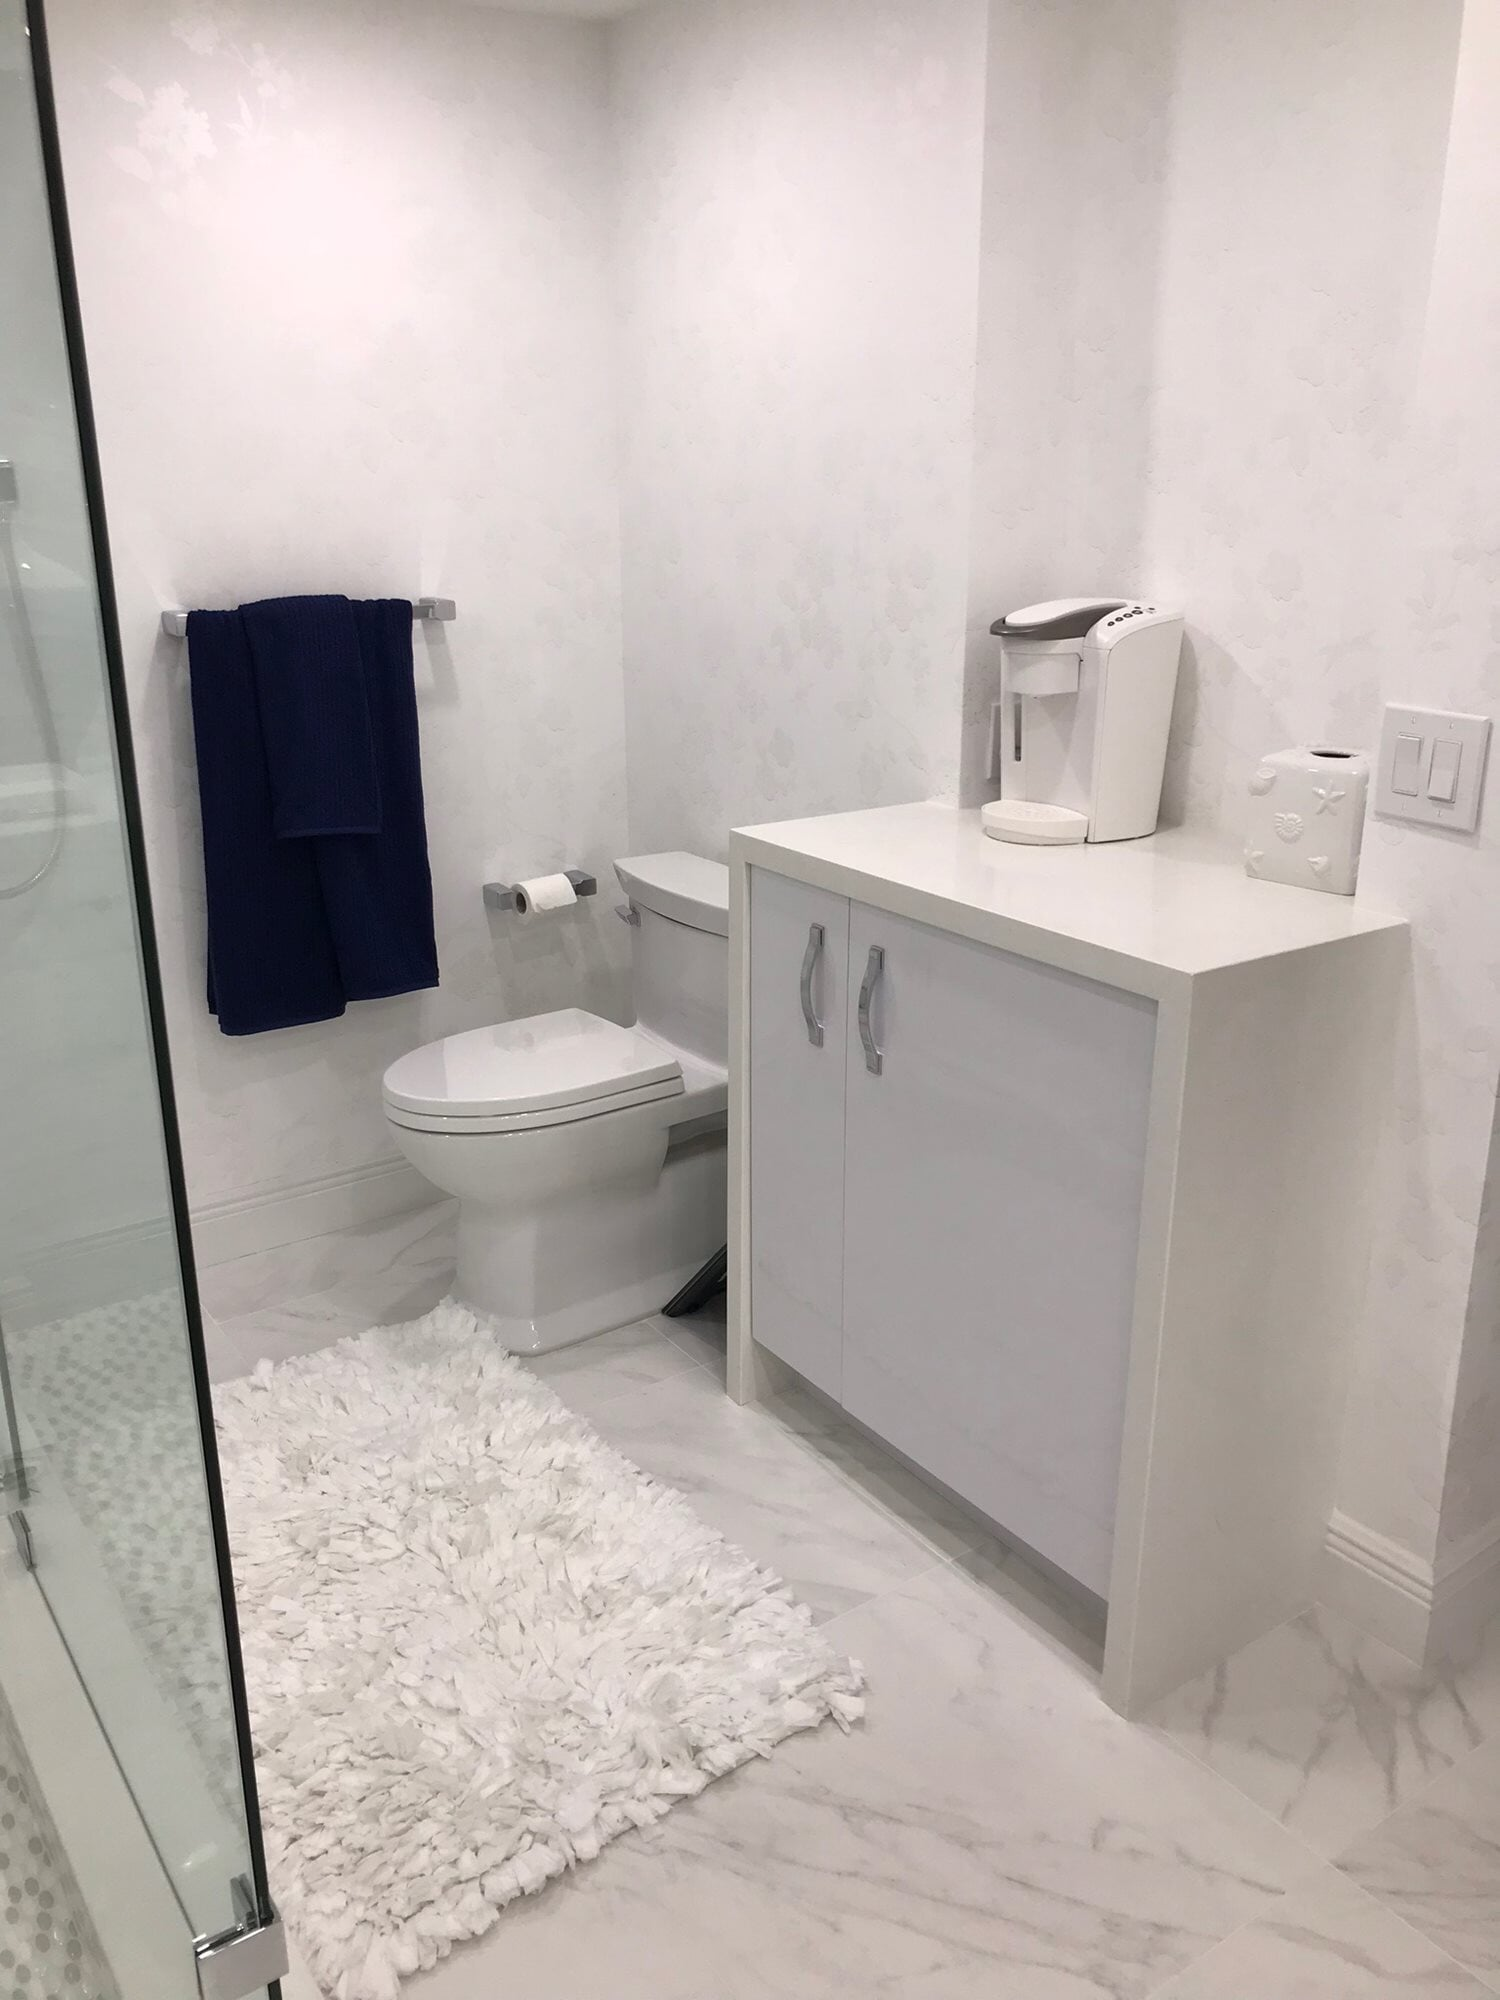 White bathroom design in Juno Beach, FL from Floors For You Kitchen & Bath